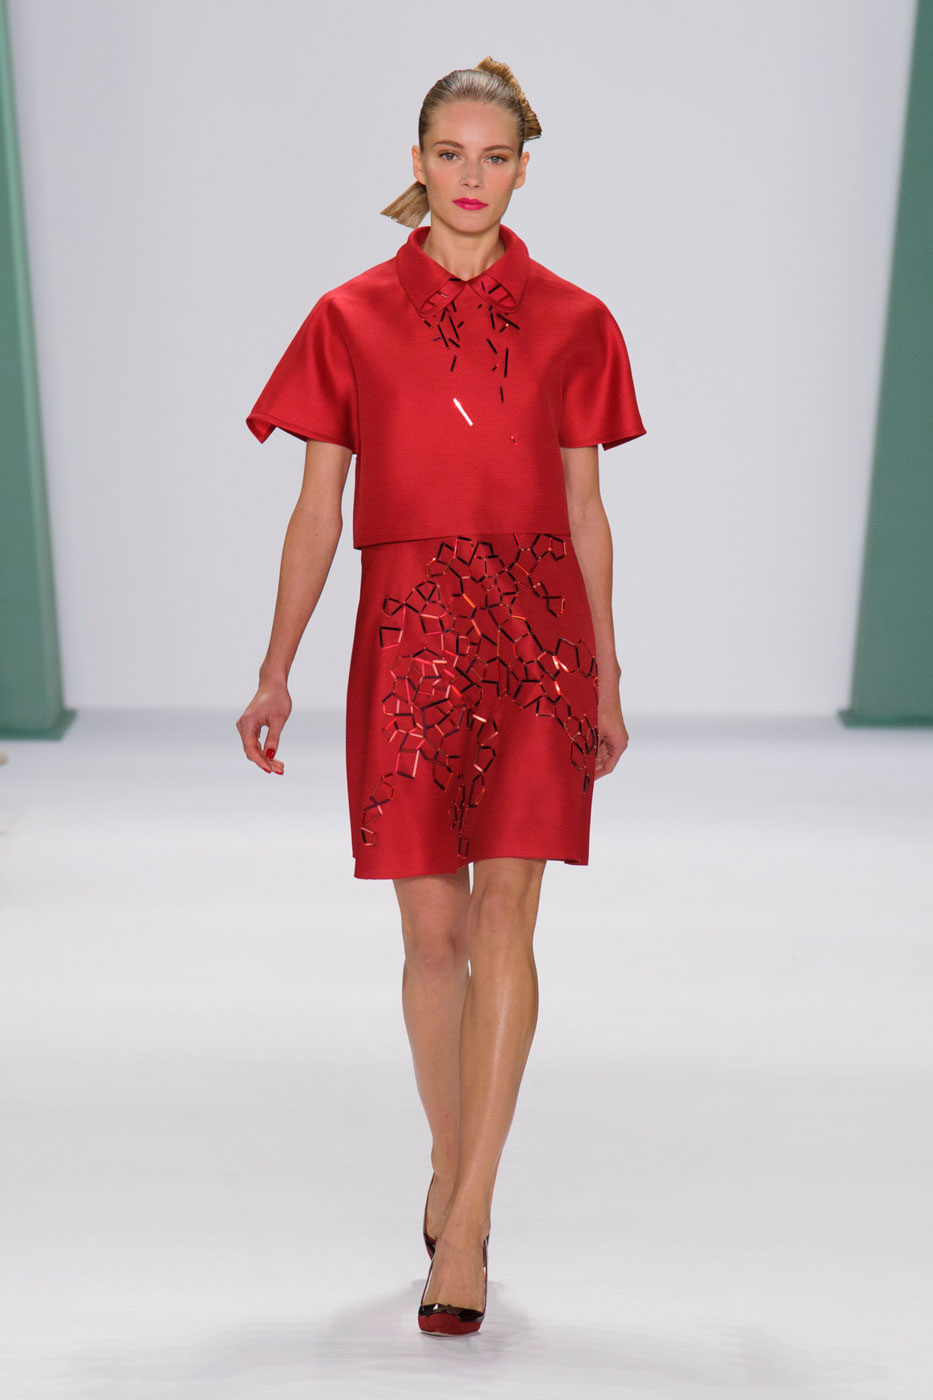 Carolina Herrera Spring 2015 Fashion Show